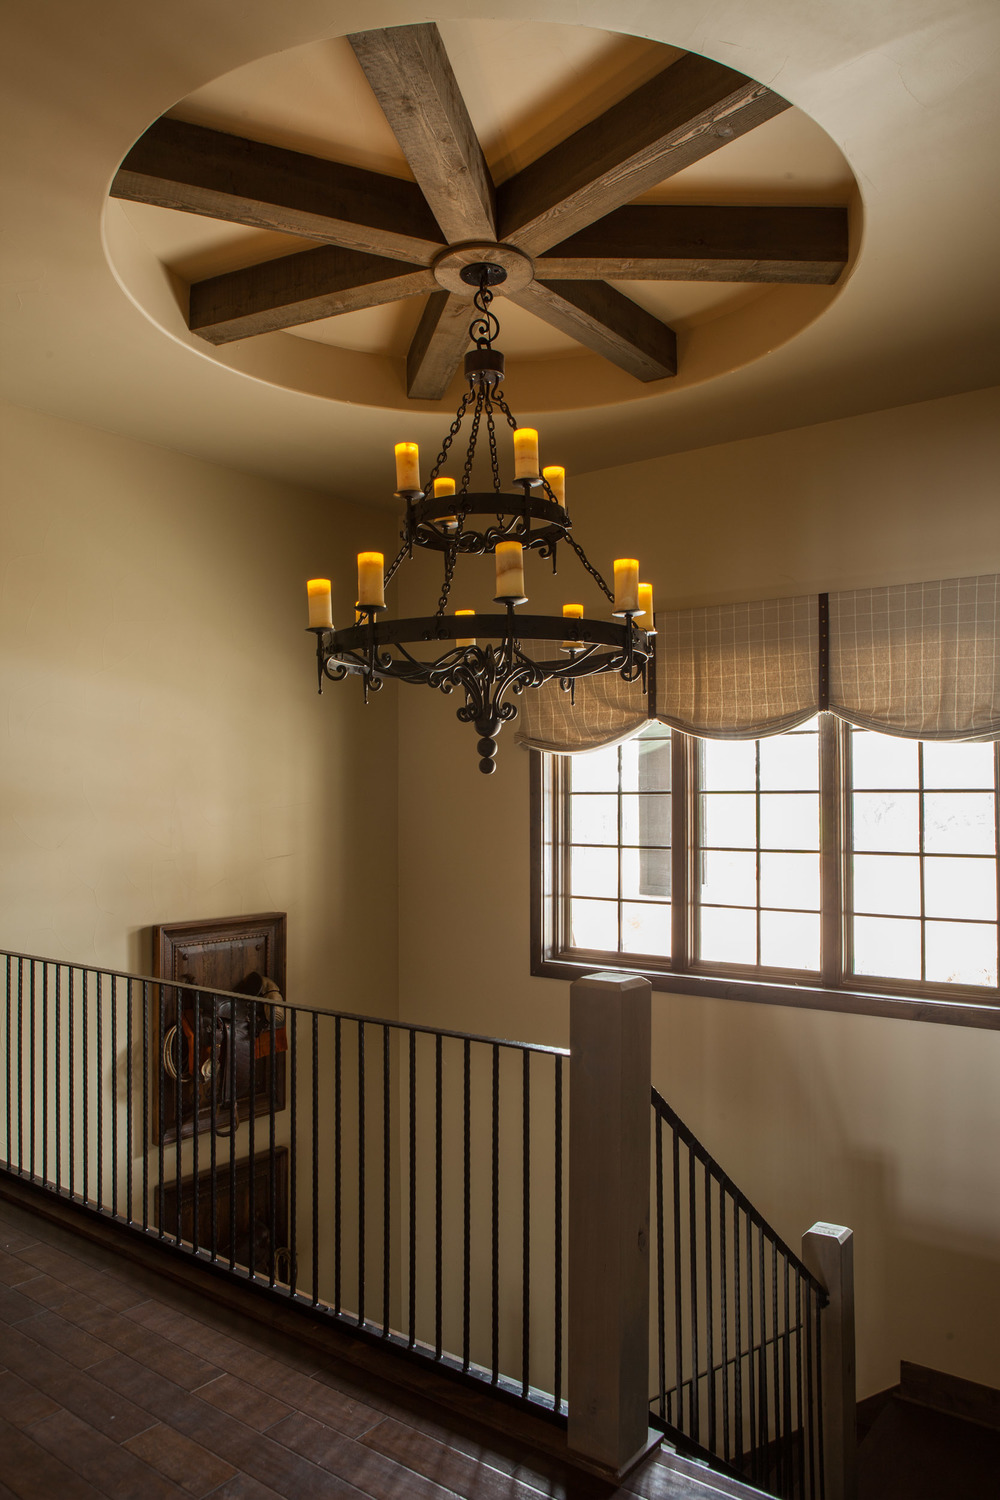 austin-house-stairs-chandelier-interior-design.jpg